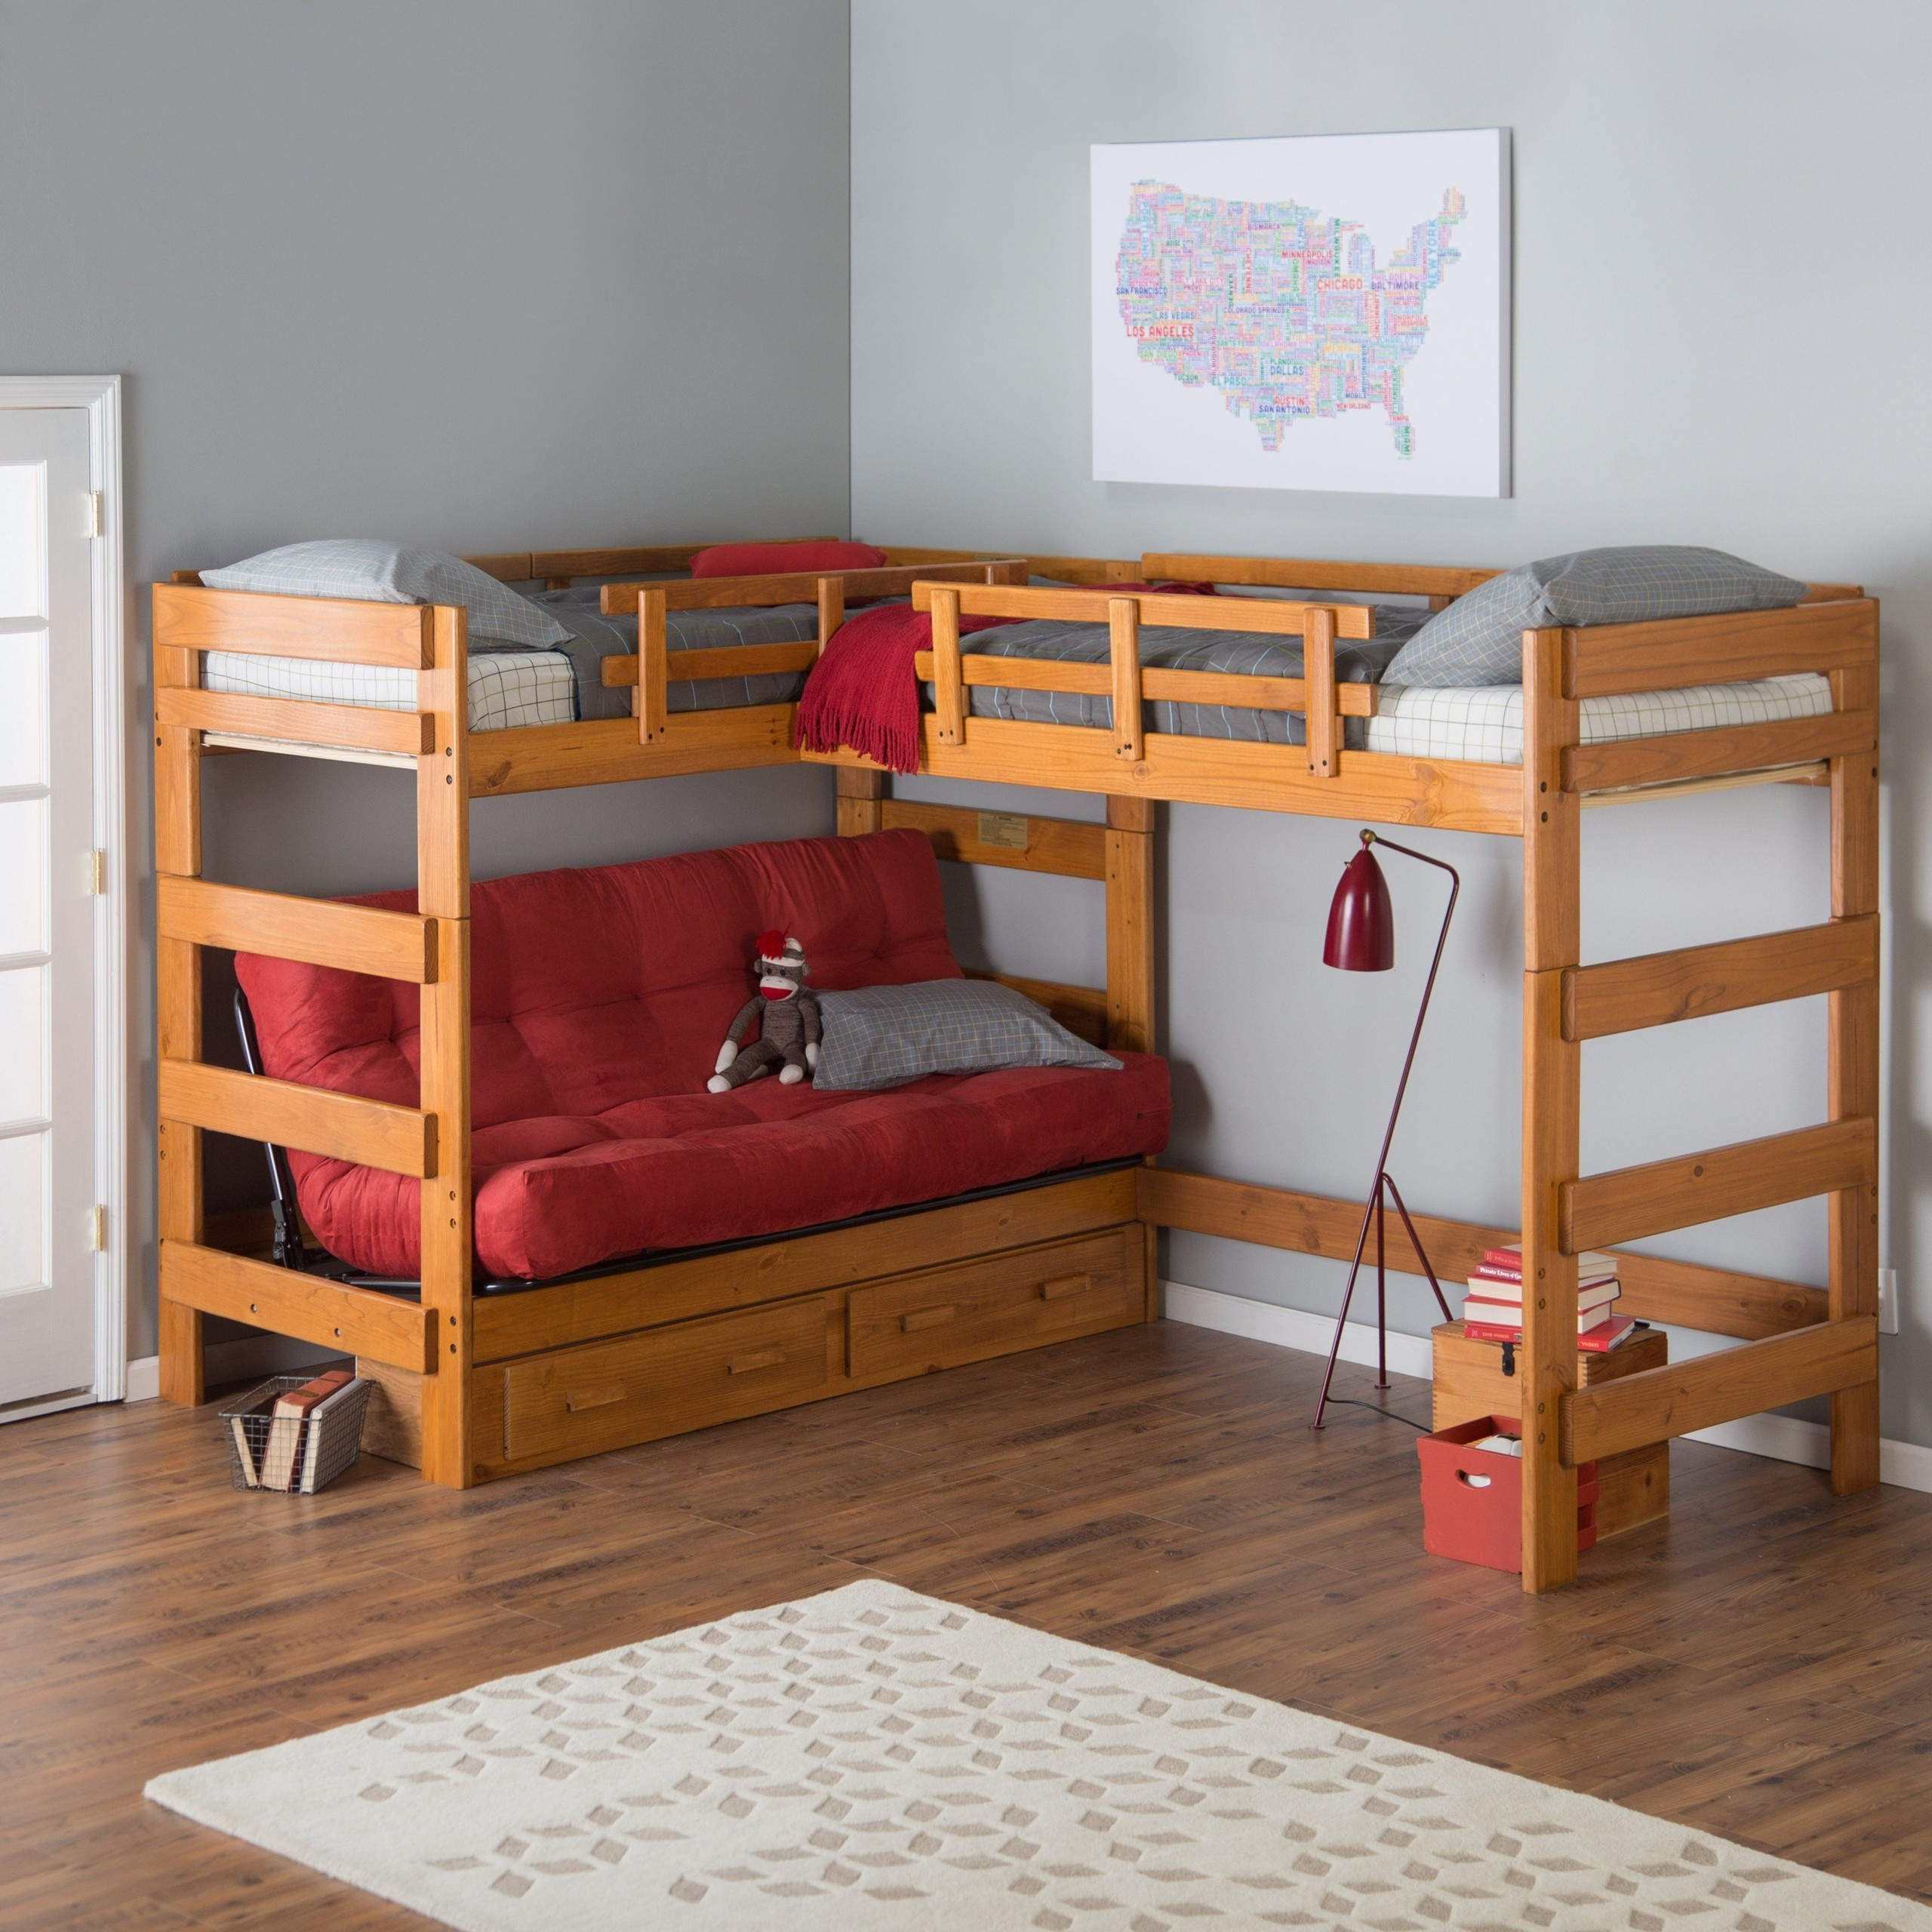 Heartland futon bunkbed with extra loft plus underbed storage